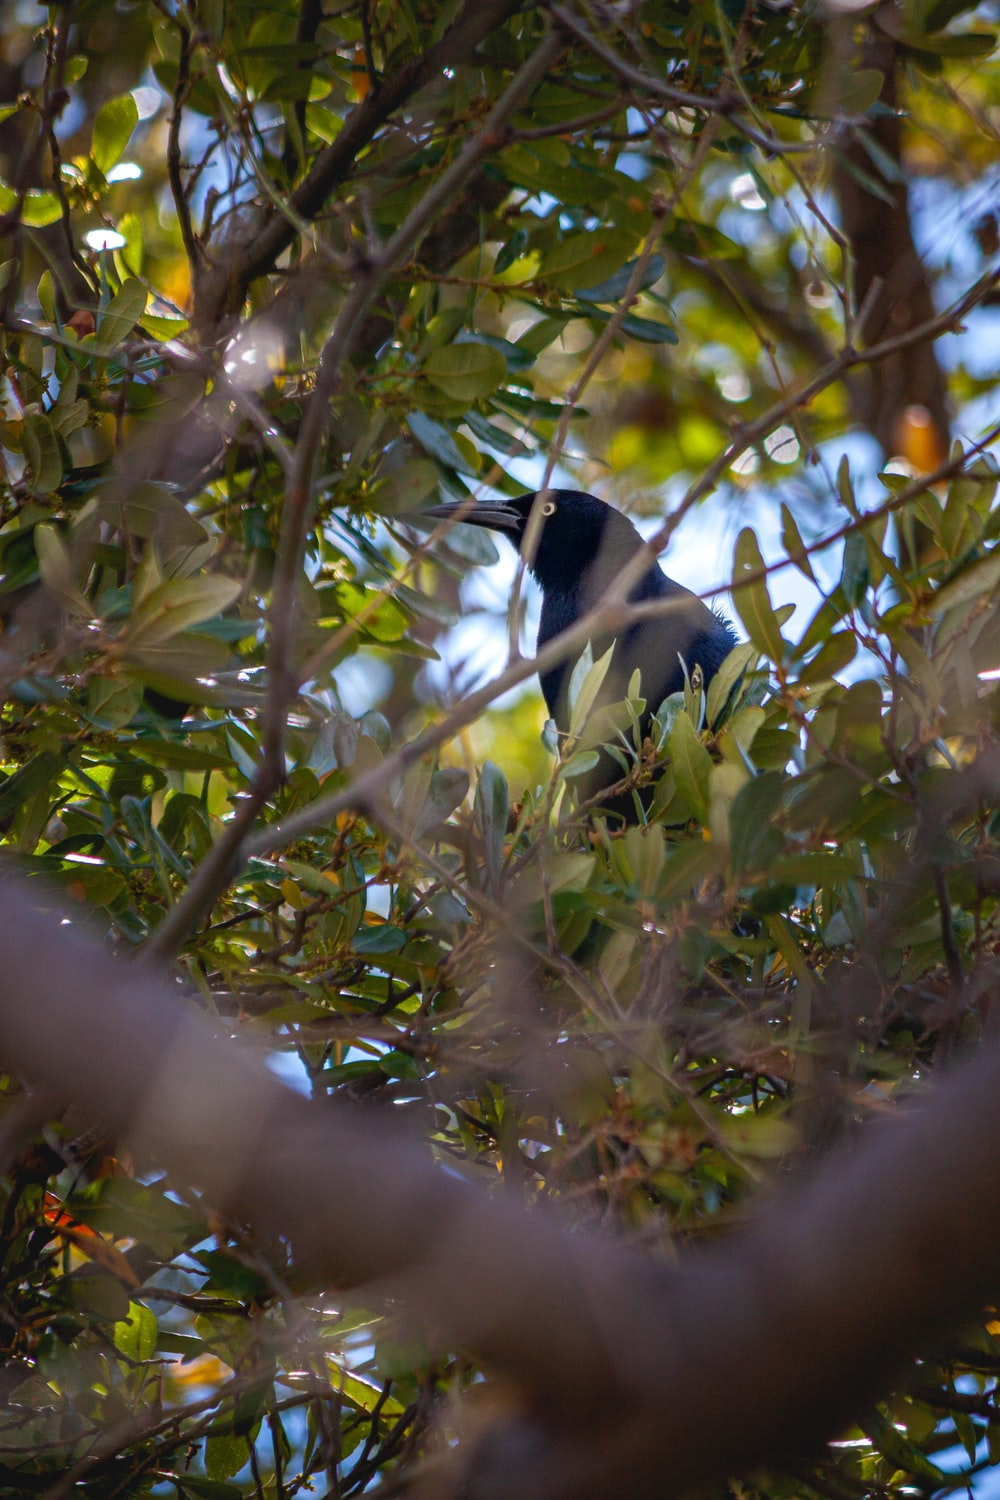 black and white bird on tree branch during daytime